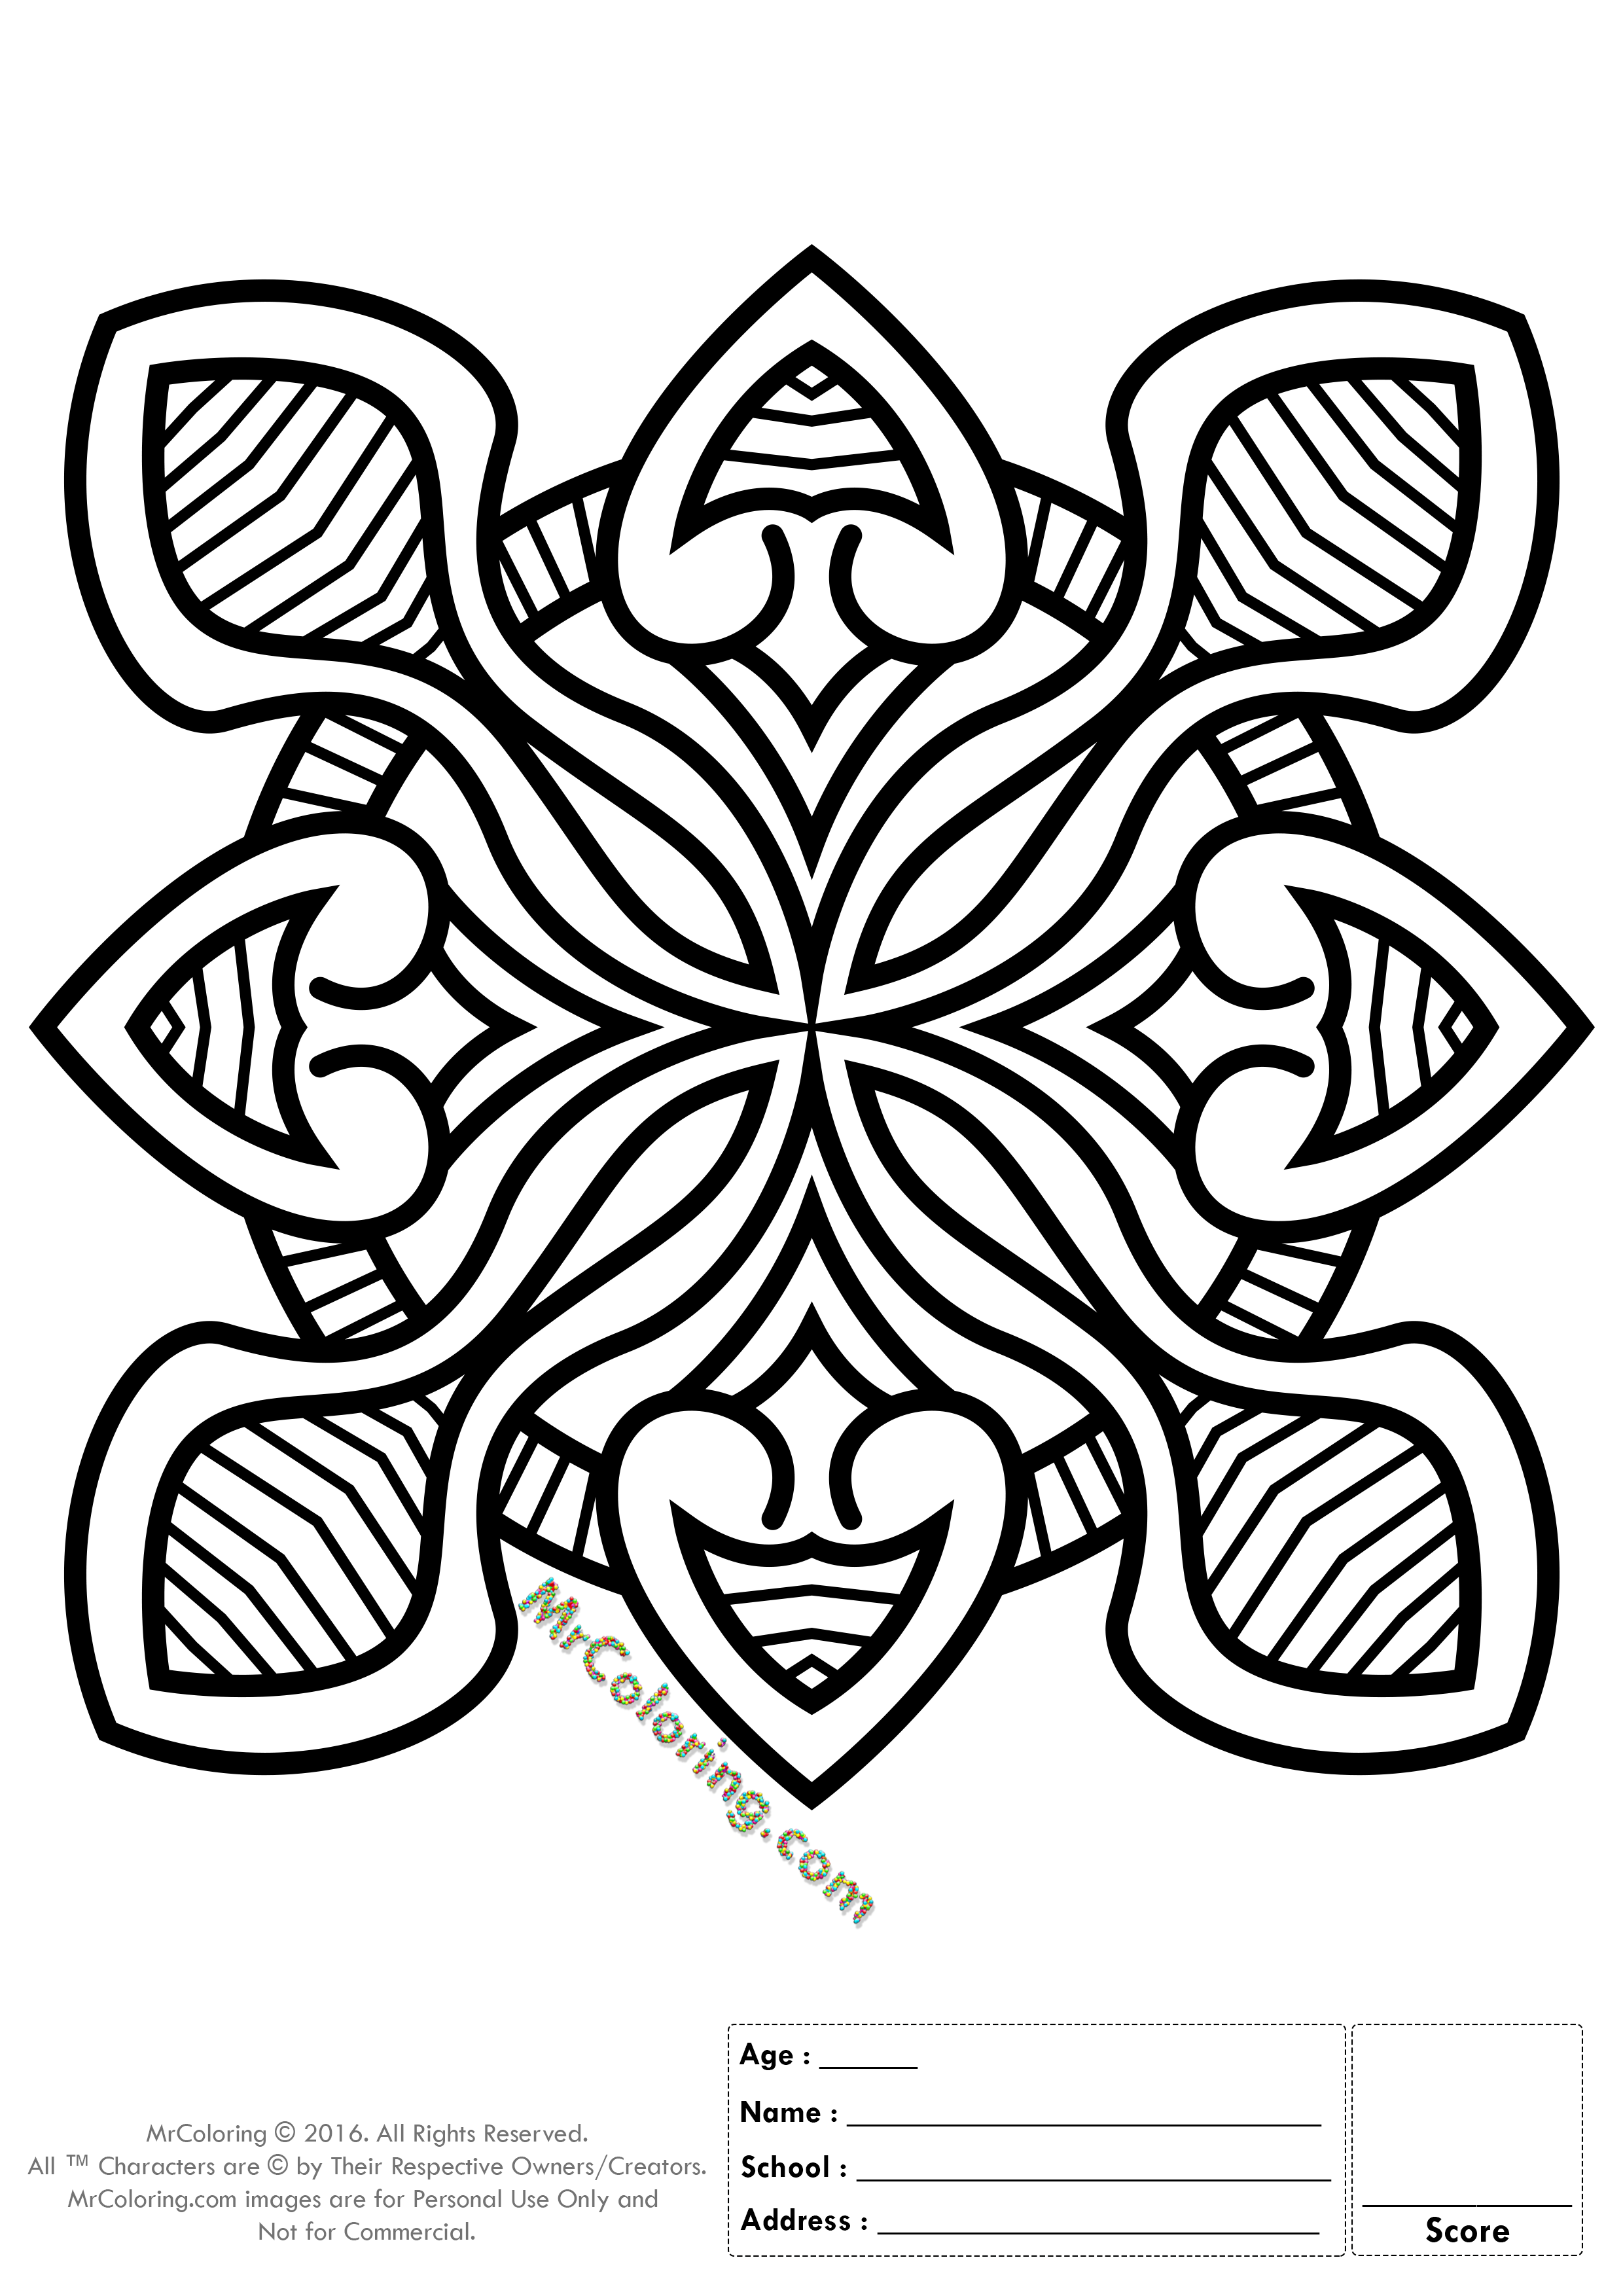 Printable Mandala Online Coloring Pages And WorkSheets